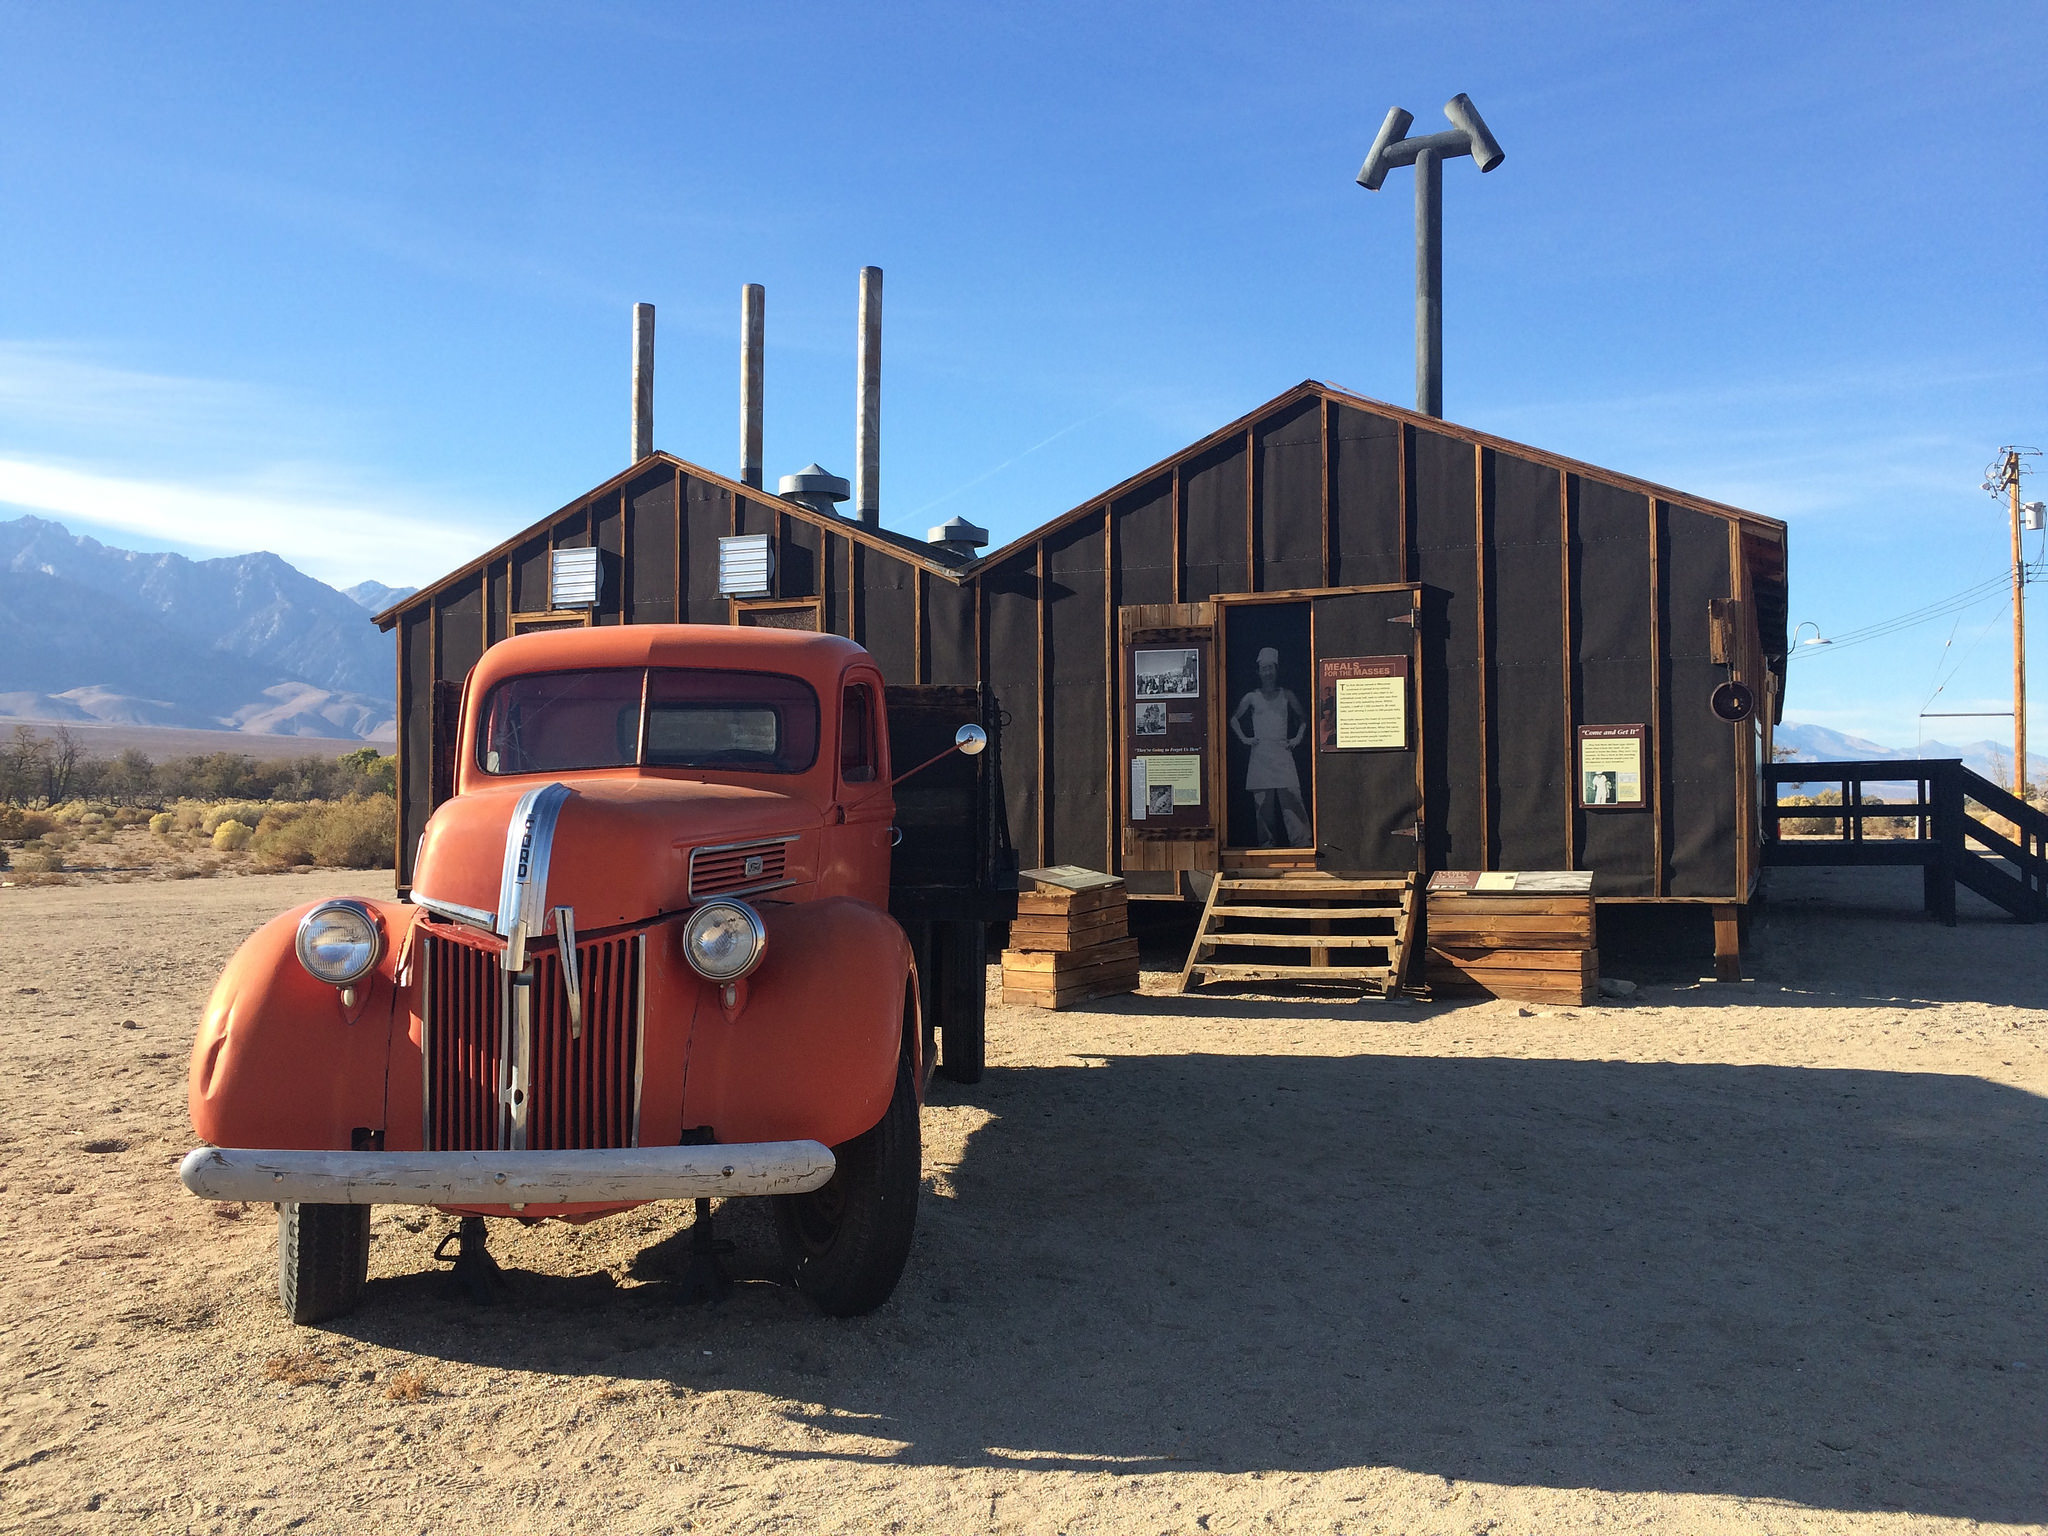 The reconstructed mess hall in a World War II-era building at Manzanar.